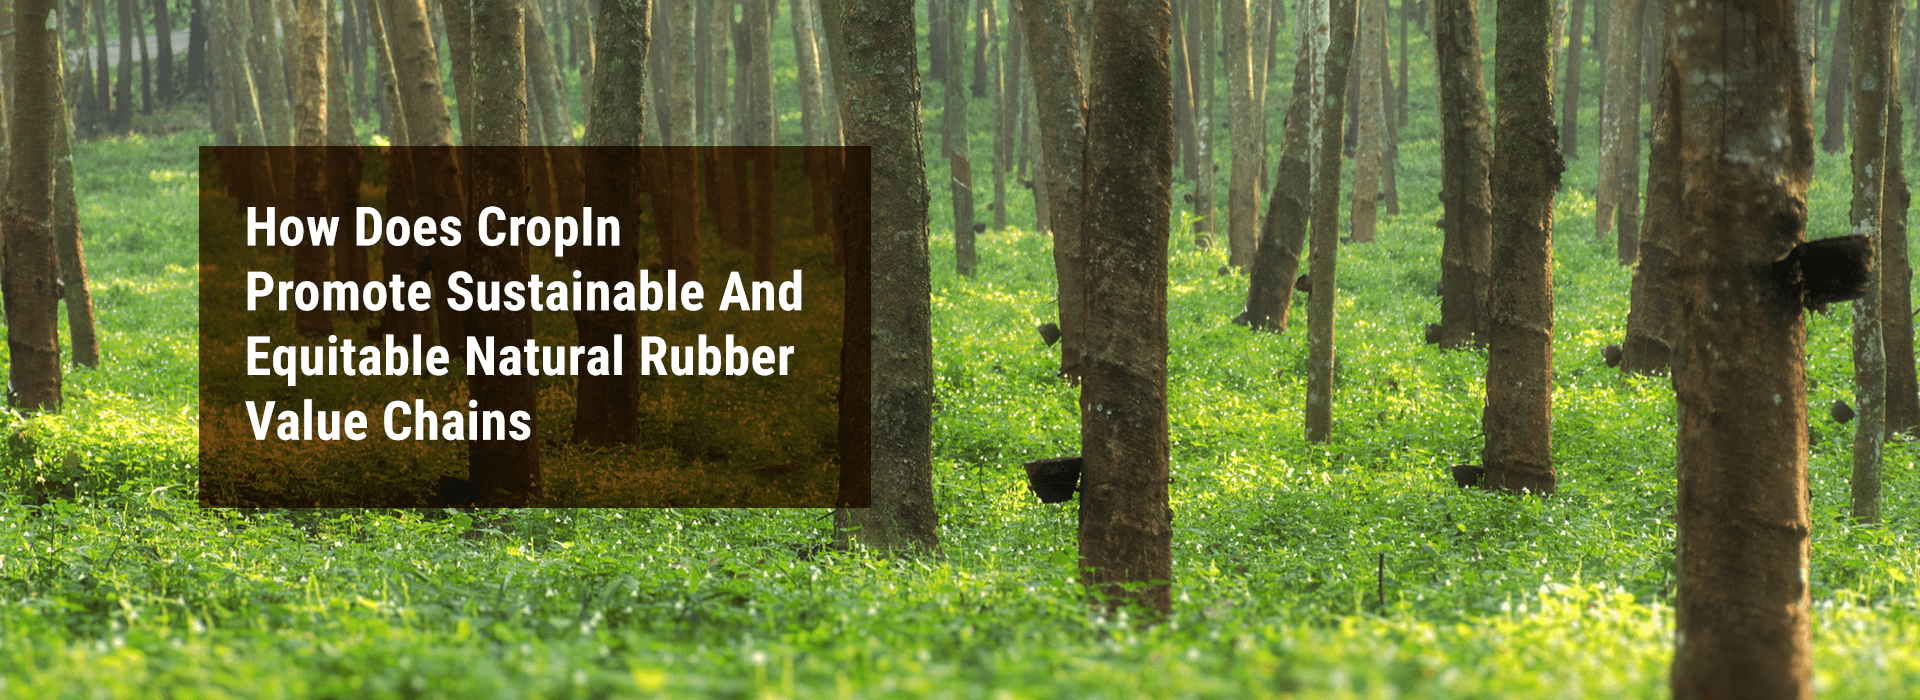 """Banner Image: """"How Does CropIn Promote Sustainable And Equitable Natural Rubber Value Chains?"""""""